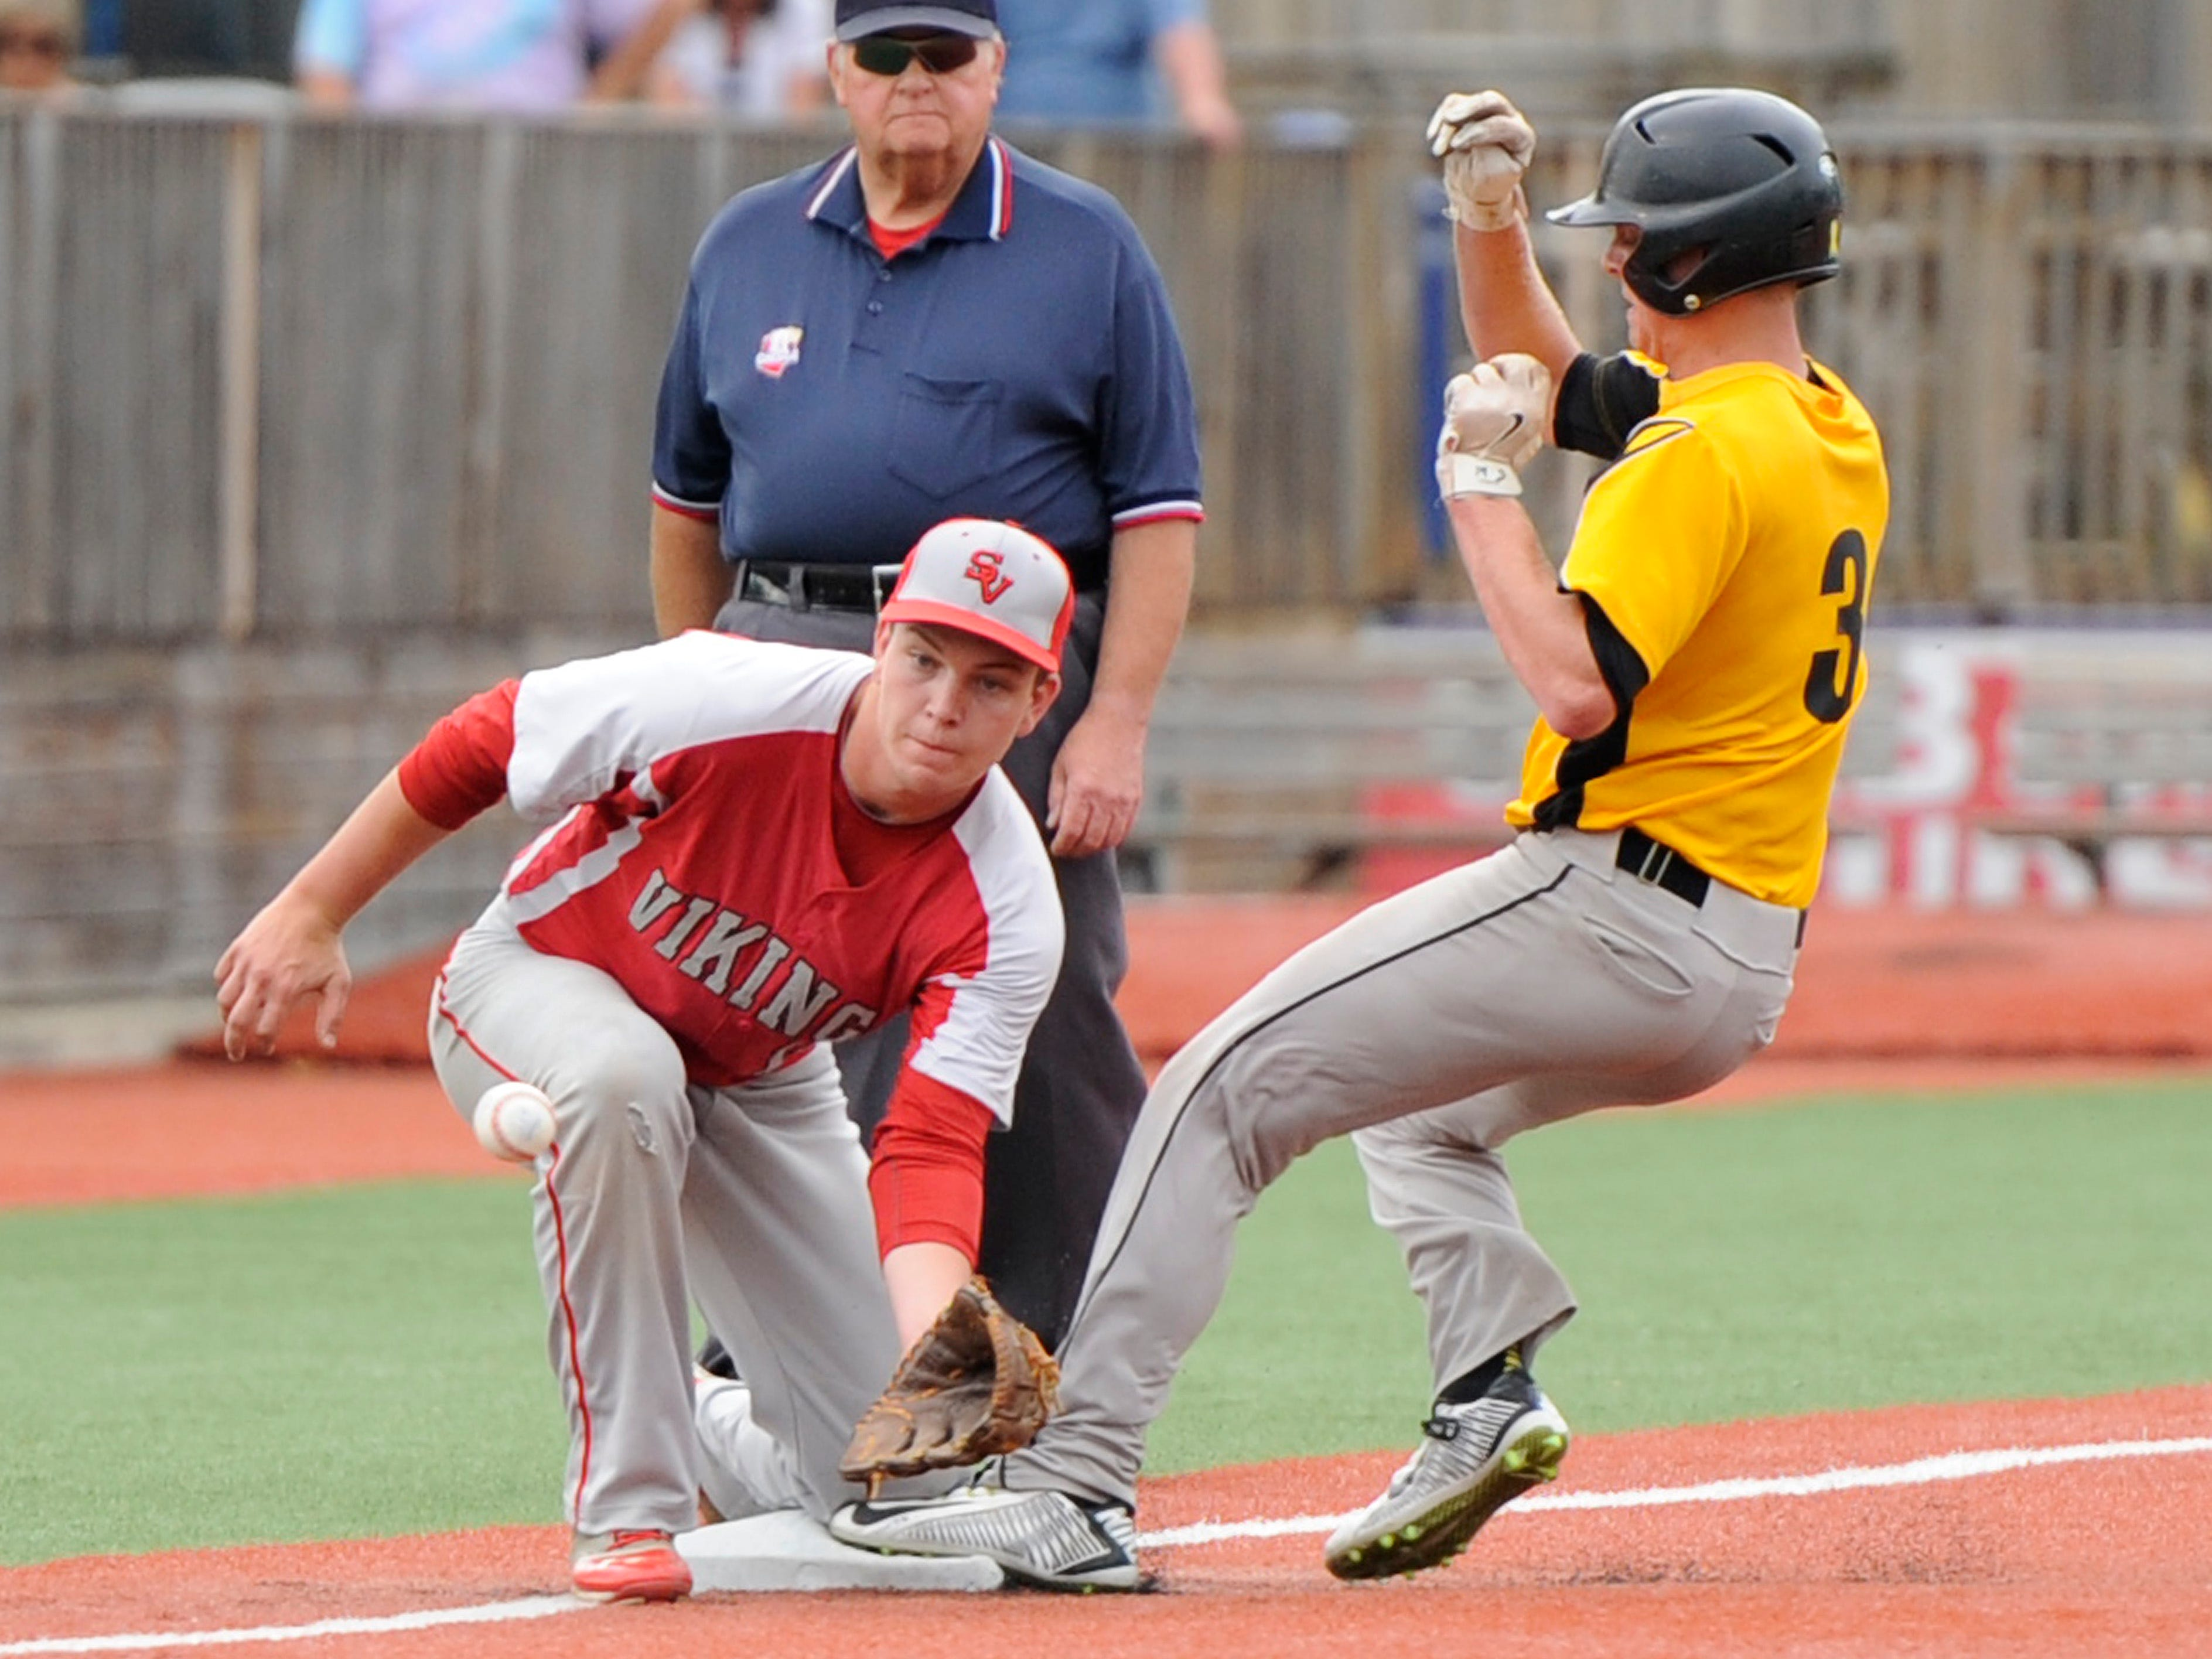 Paint Valley's Anthony McFadden manages to safely slide into third base during the Division IV District Final against Symmes Valley at V.A. Memorial Stadium, Monday night. The final score was Paint Valley 5, Symmes Valley 4.